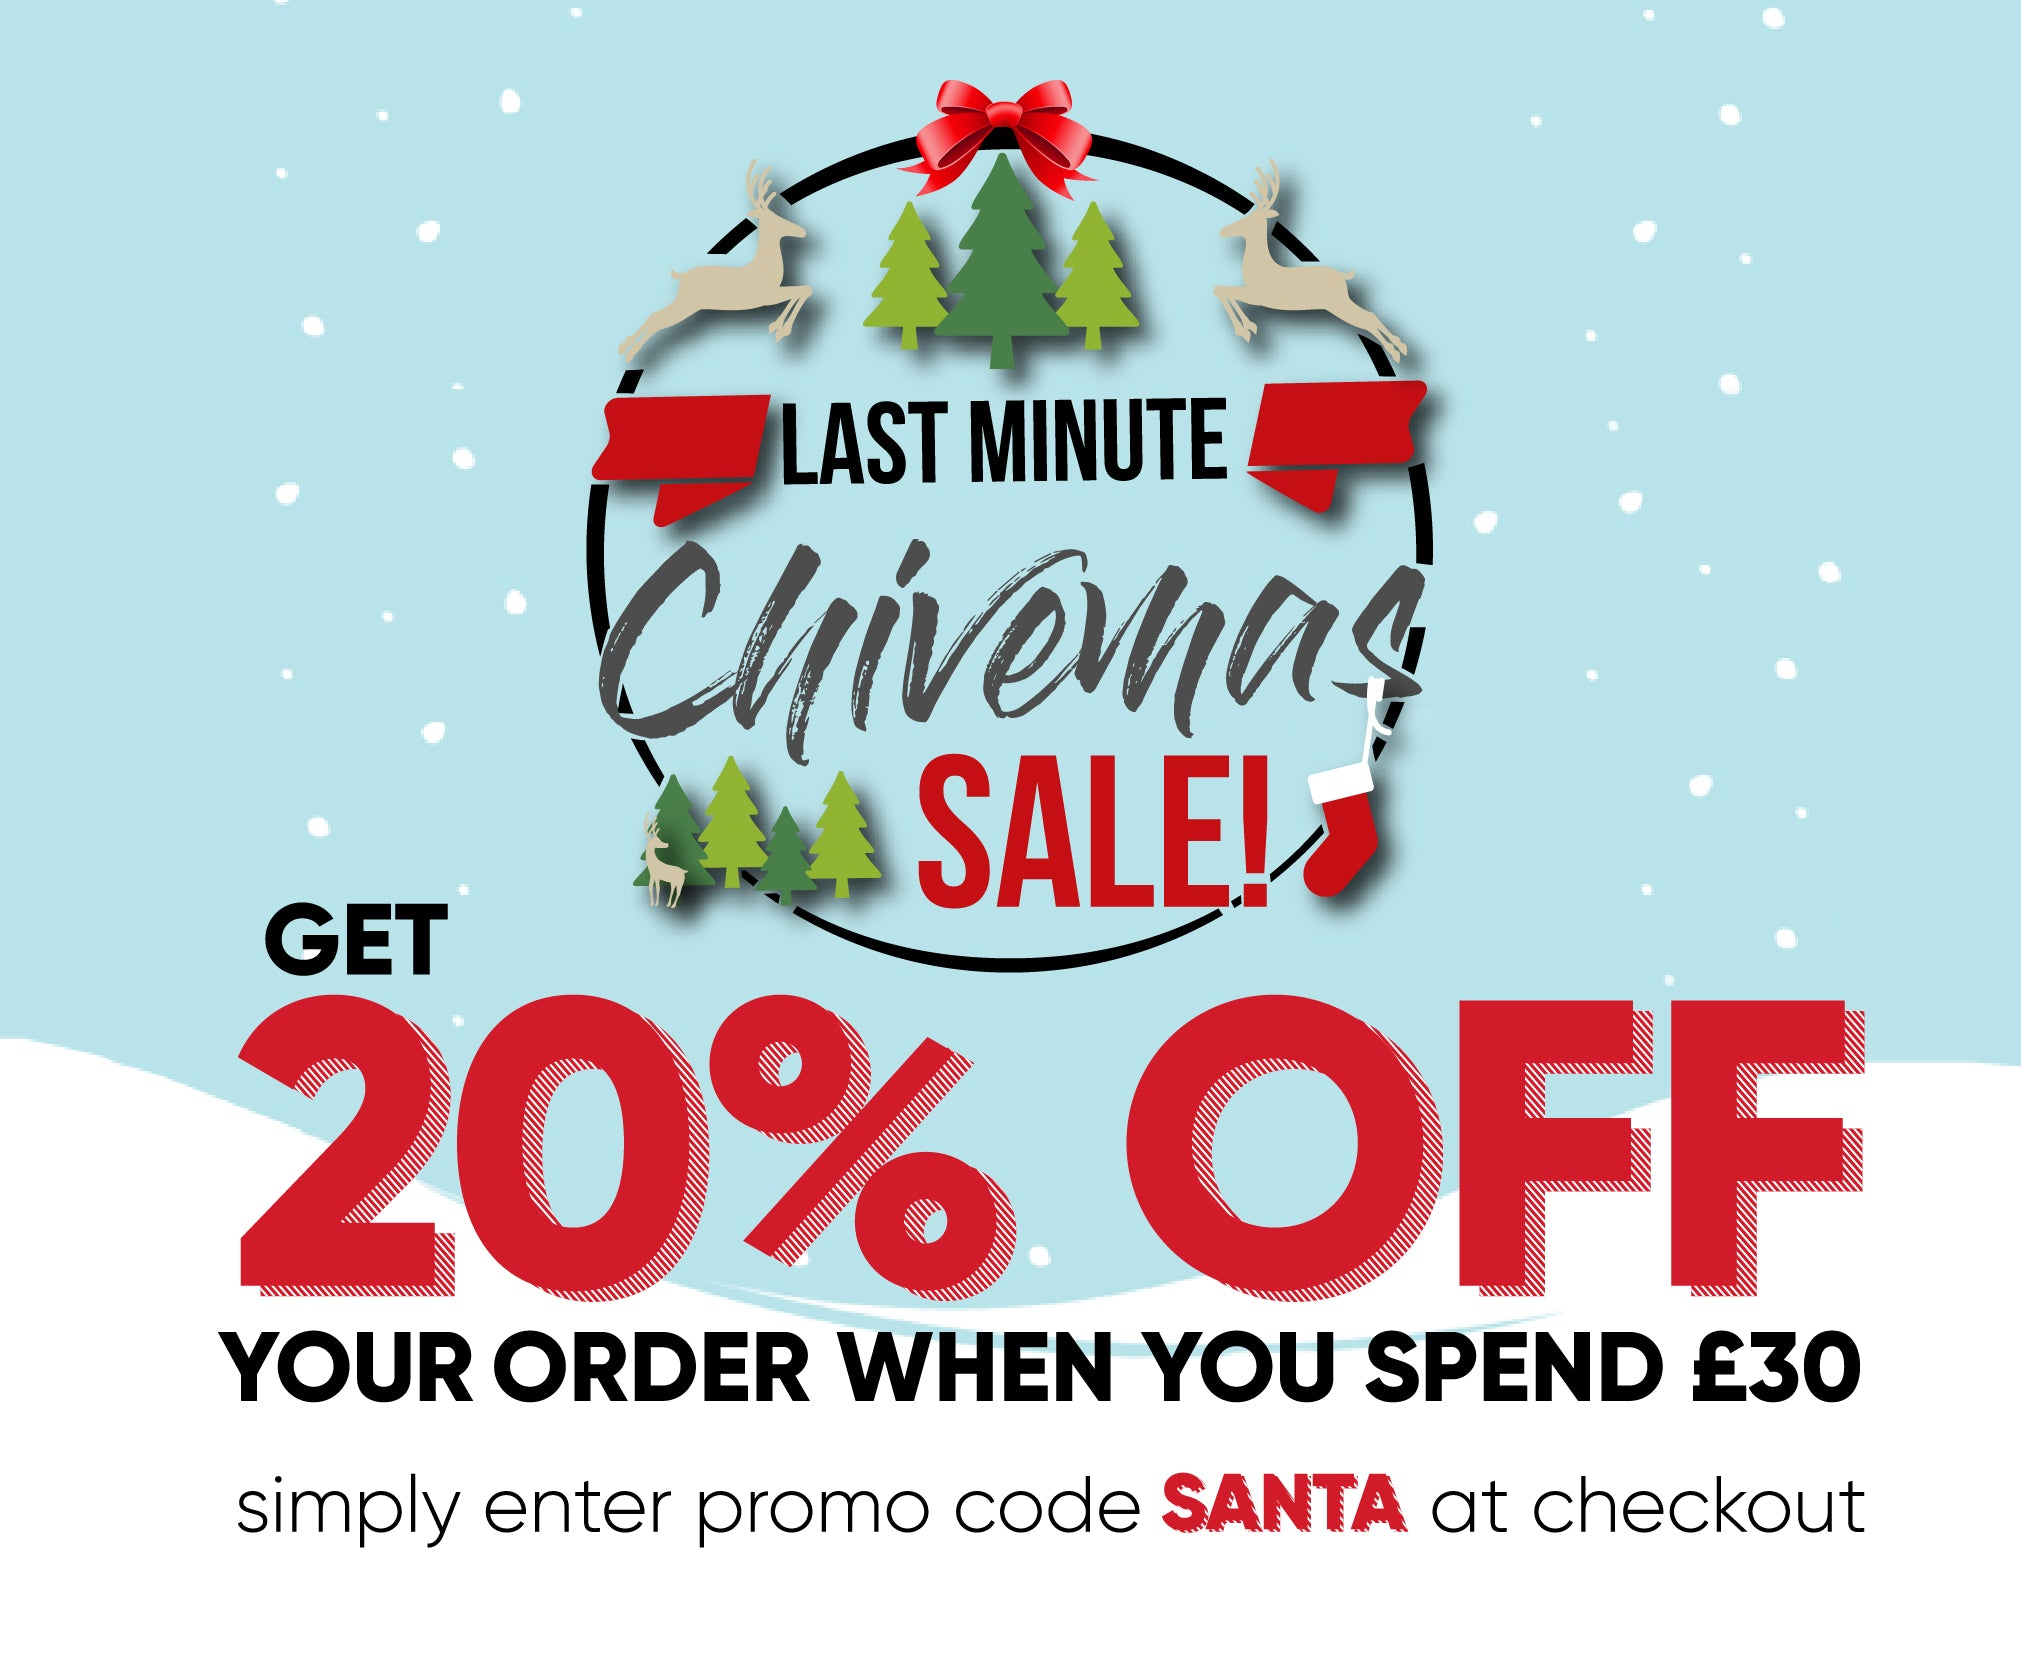 Chive UK - Christmas Sale Event